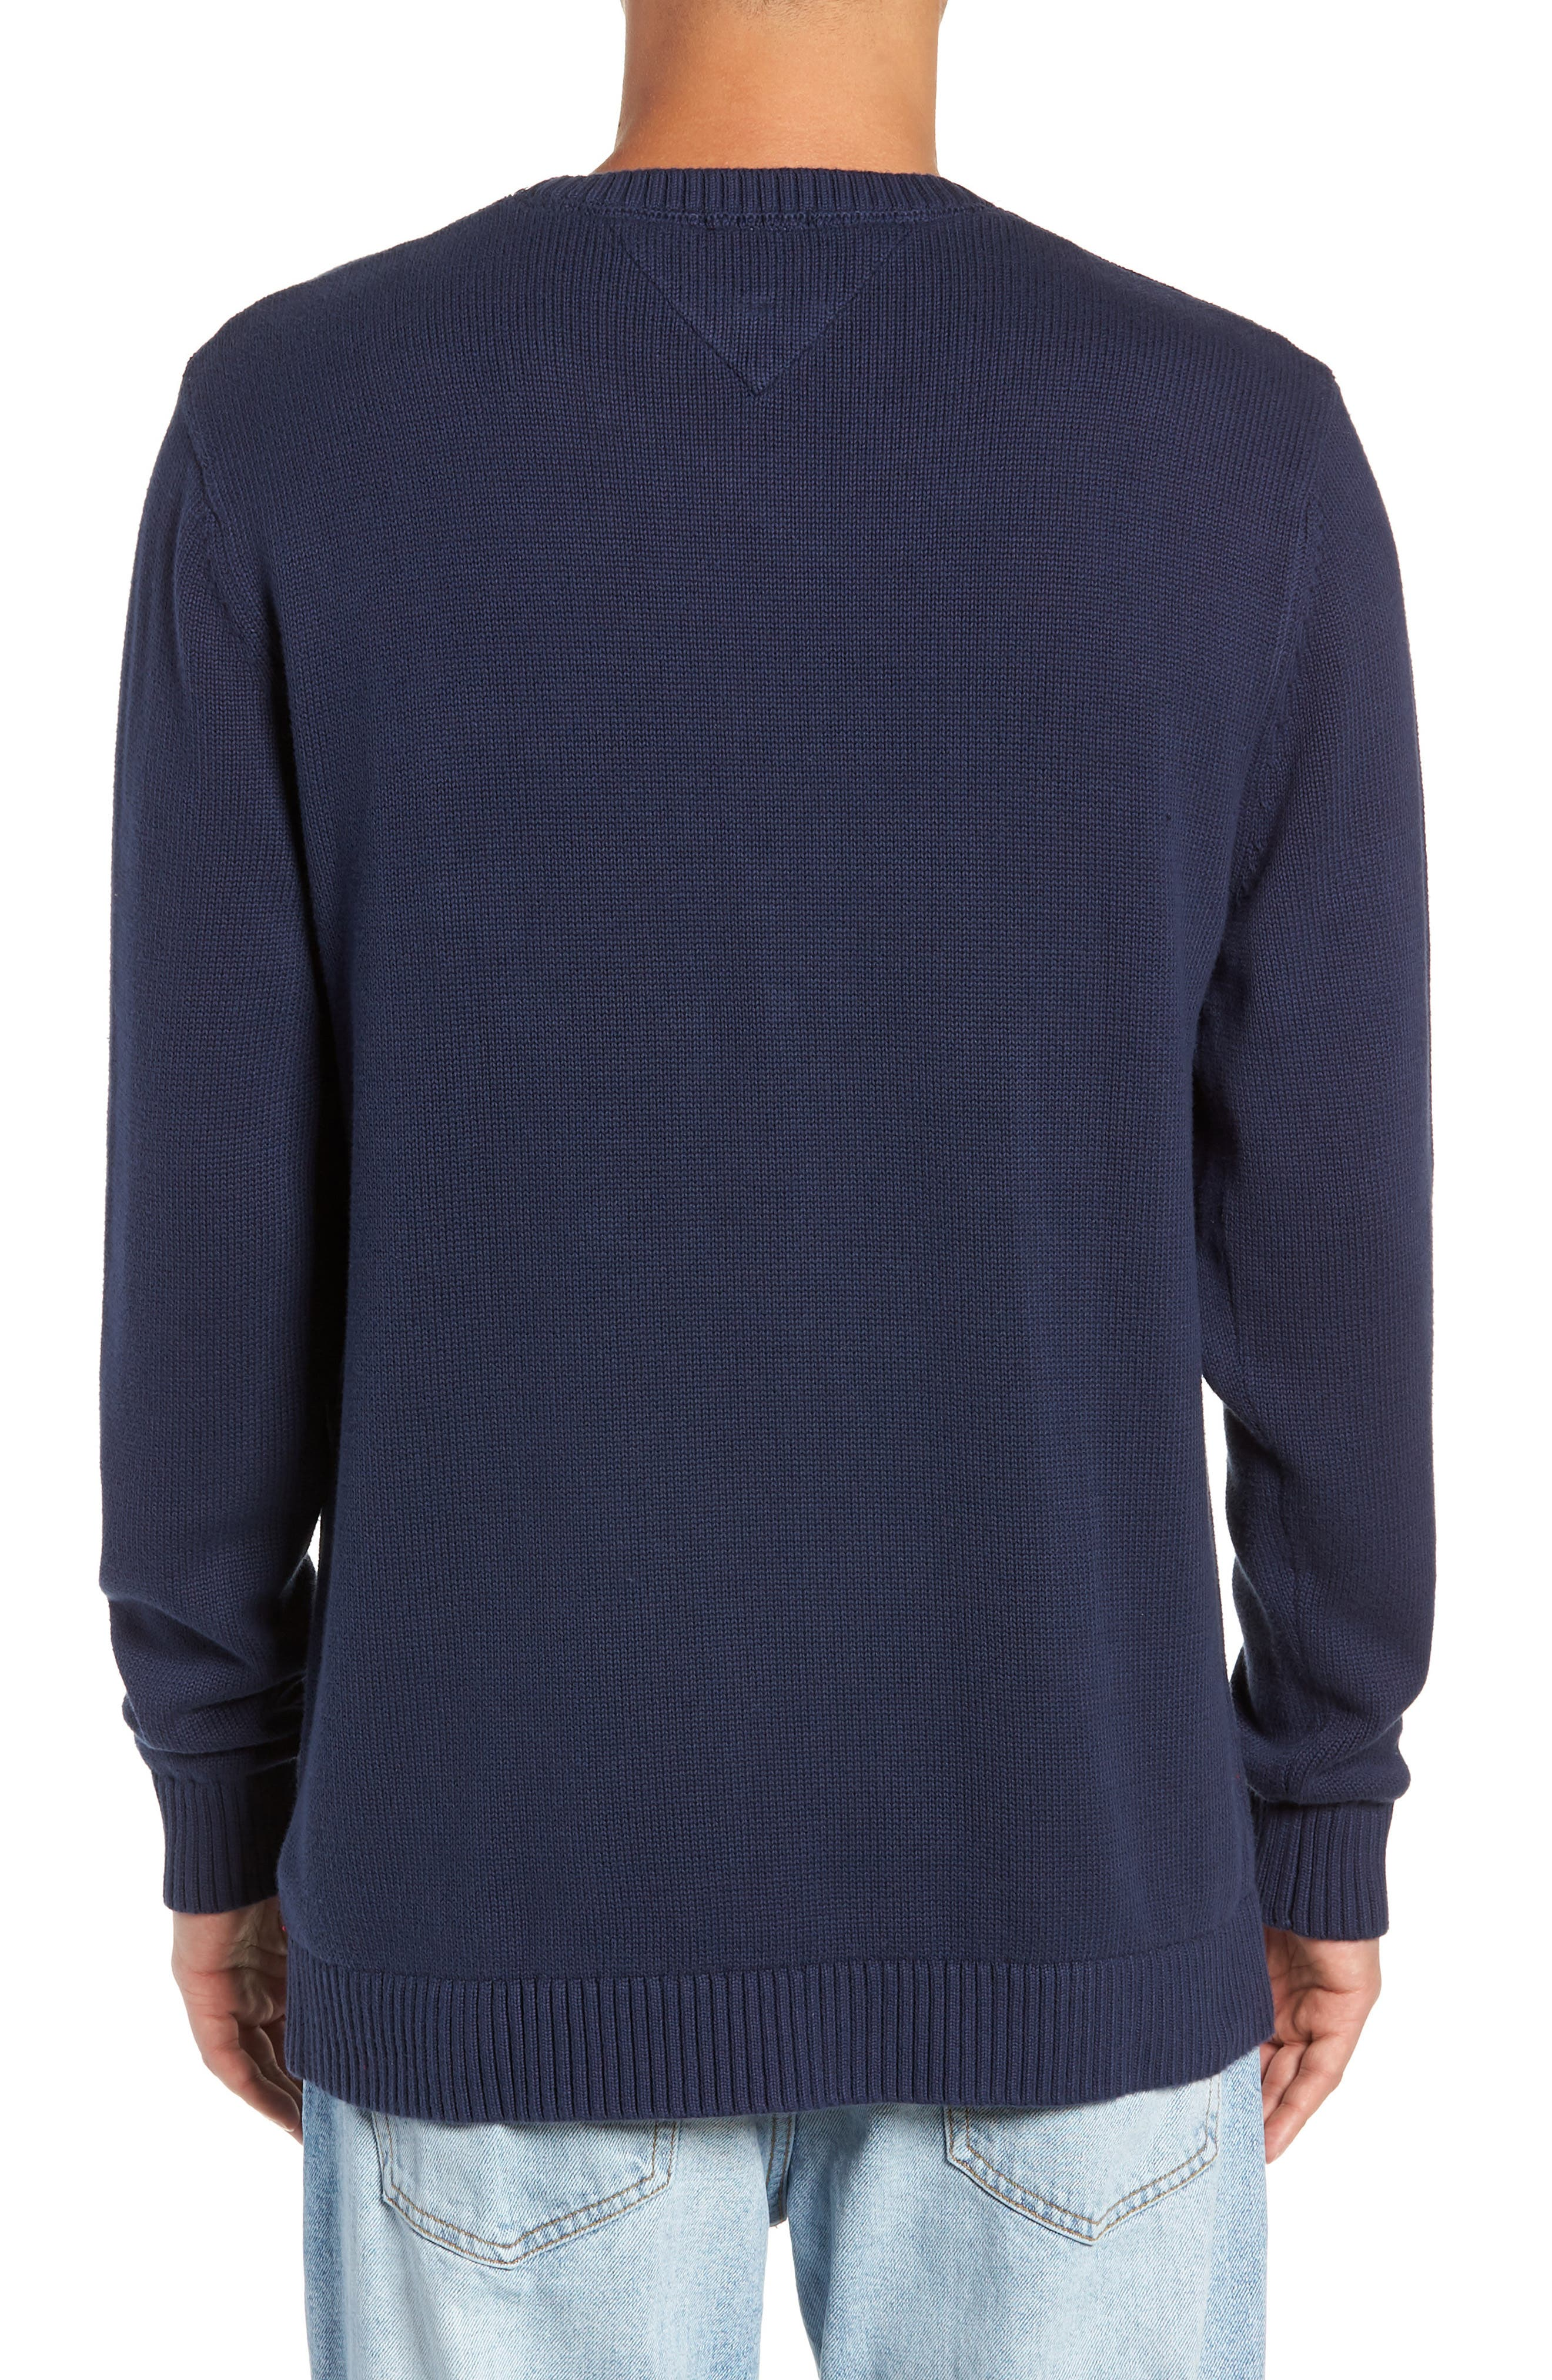 TJM Tommy Classics Sweater,                             Alternate thumbnail 2, color,                             BLACK IRIS